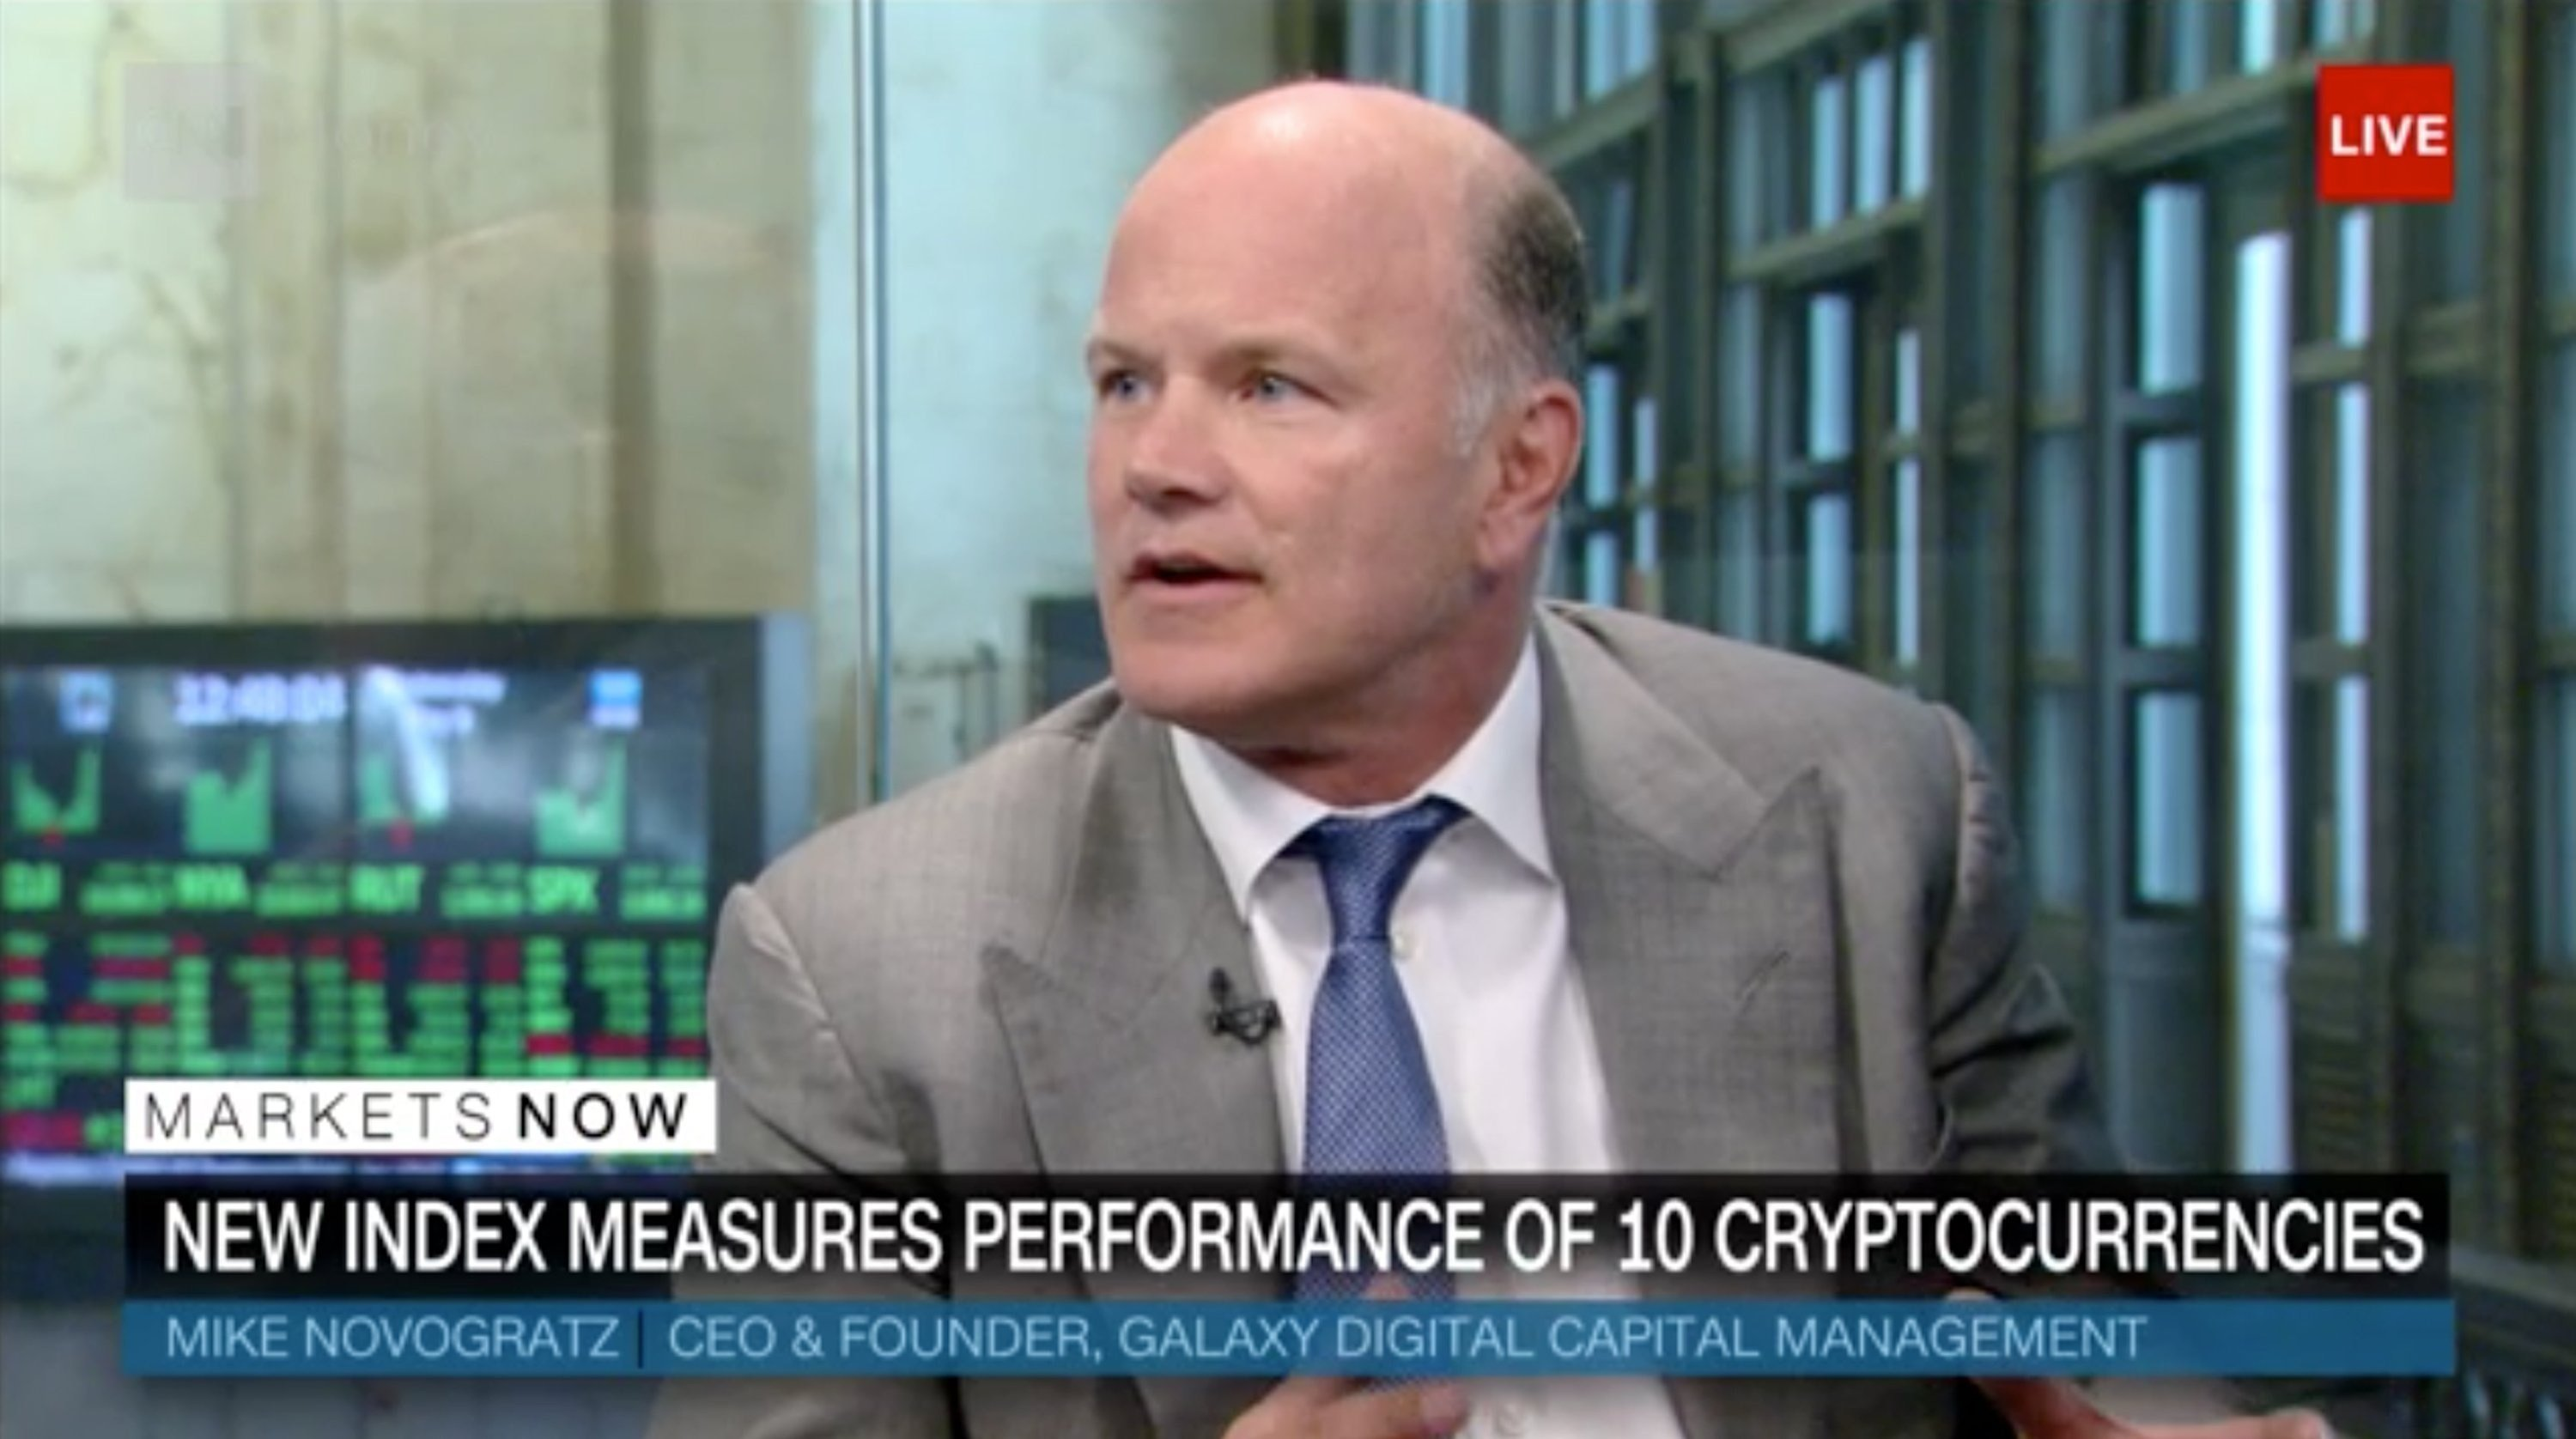 Bloomberg Partners Novogratz's Galaxy Digital Capital To Launch Cryptocurrency Index